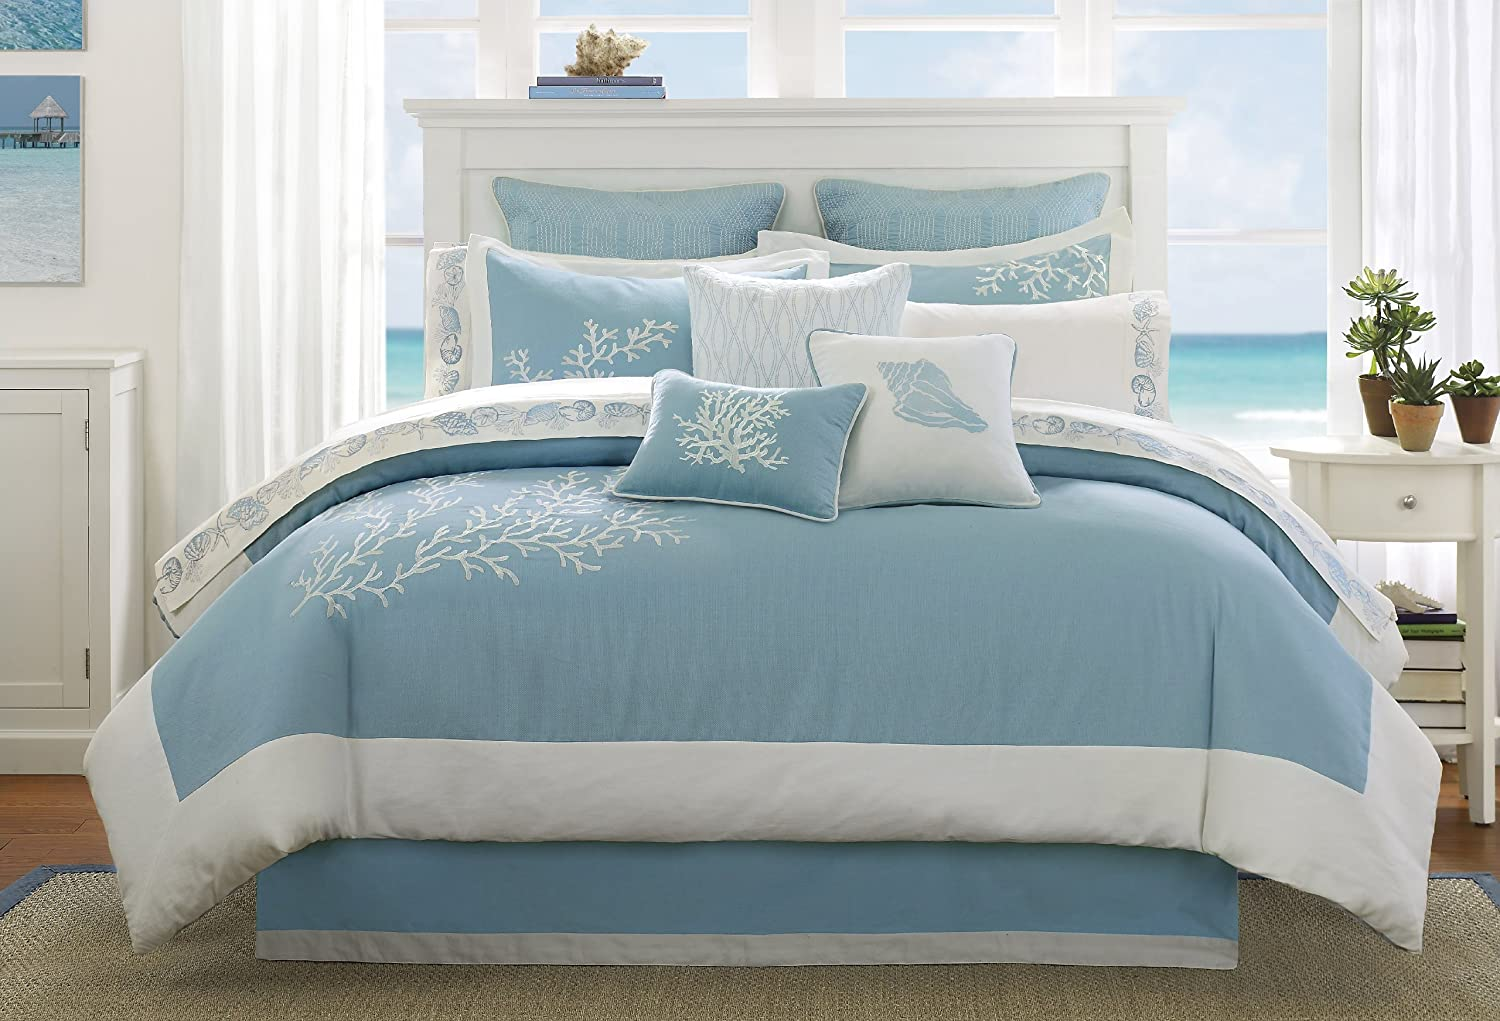 Bed sheets designs white - Coastline Queen Comforter Set